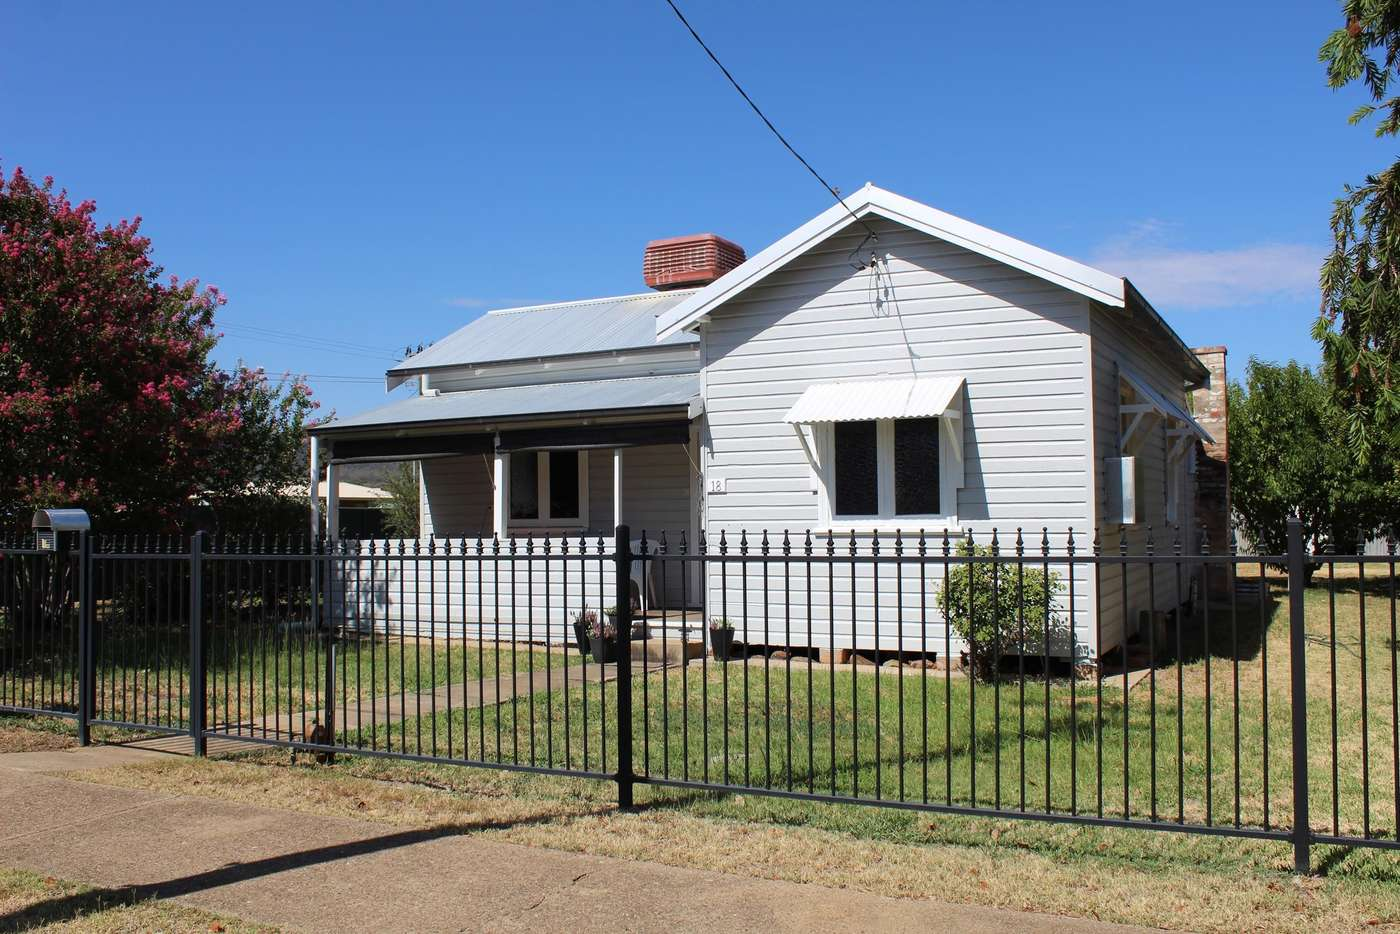 Main view of Homely house listing, 18 Riddell Street, Bingara NSW 2404